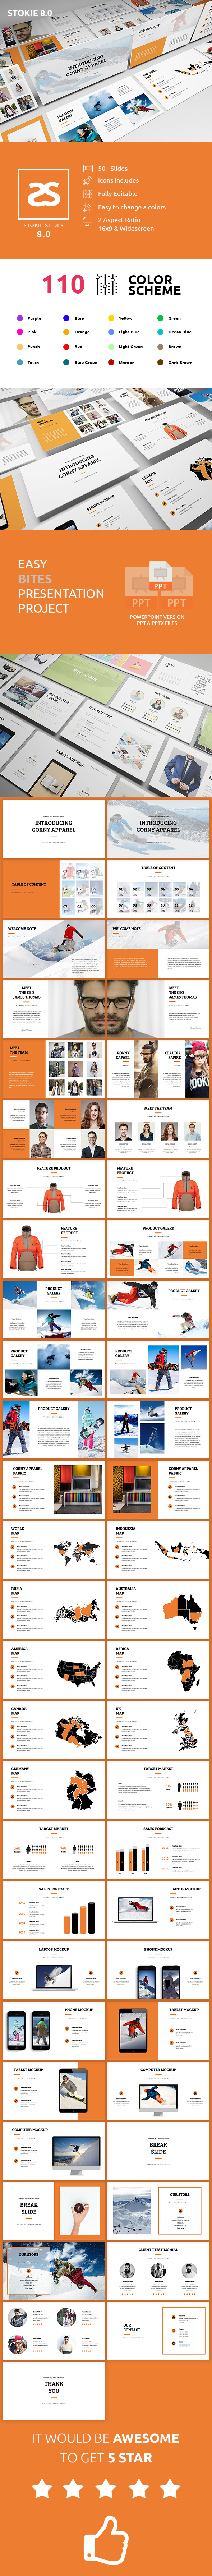 GraphicRiver Apparel Product Launching Powerpoint Template 8.0 20872149